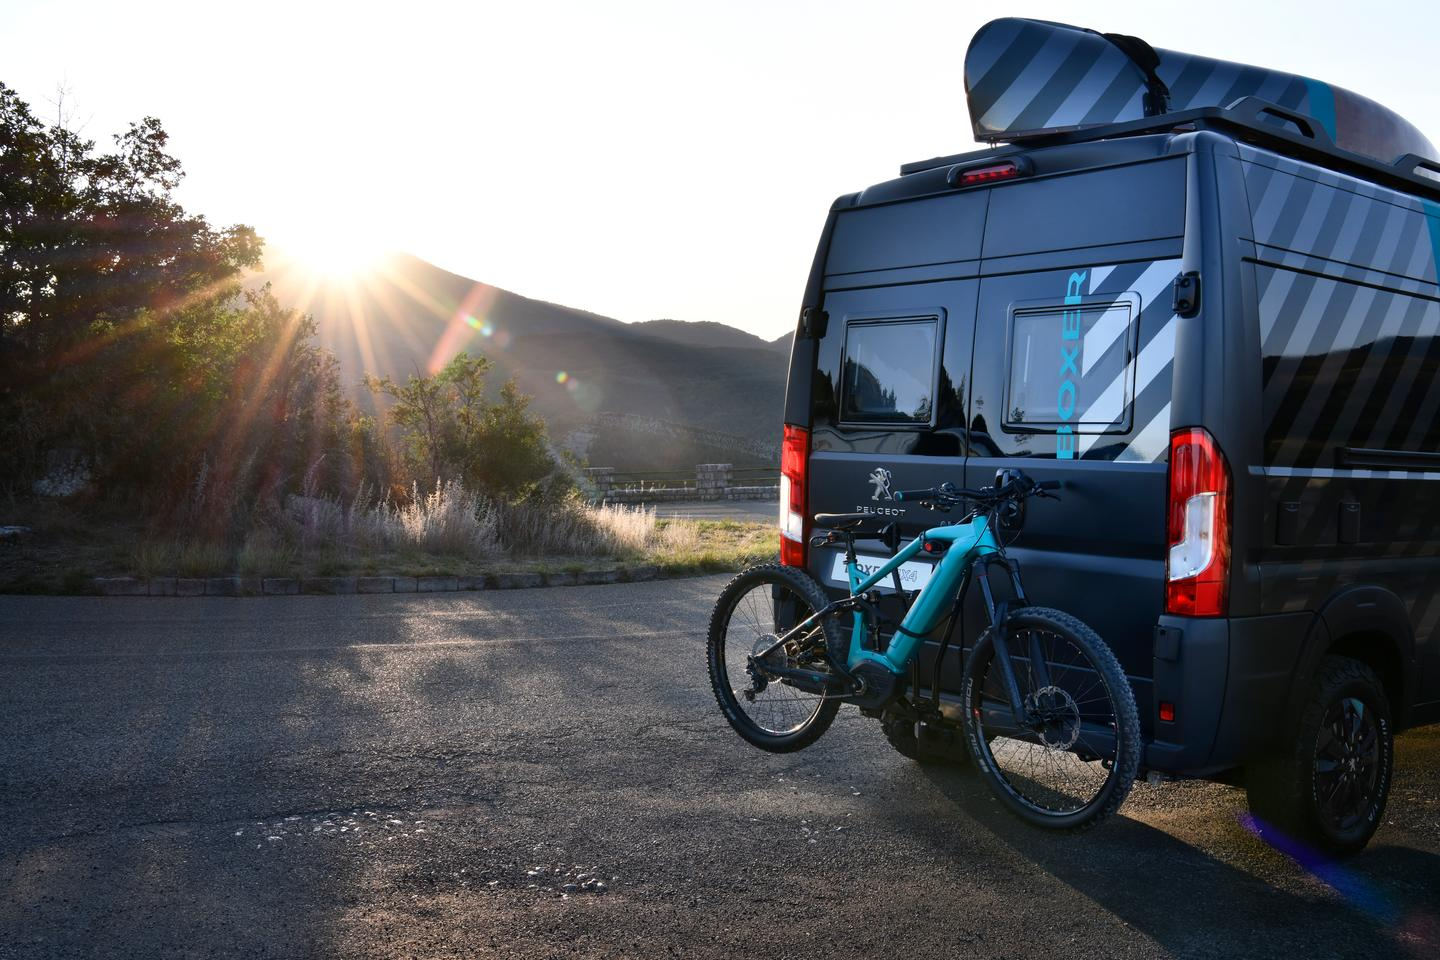 The electric bike on the back of this Peugeot Boxer Camper is a nice touch!